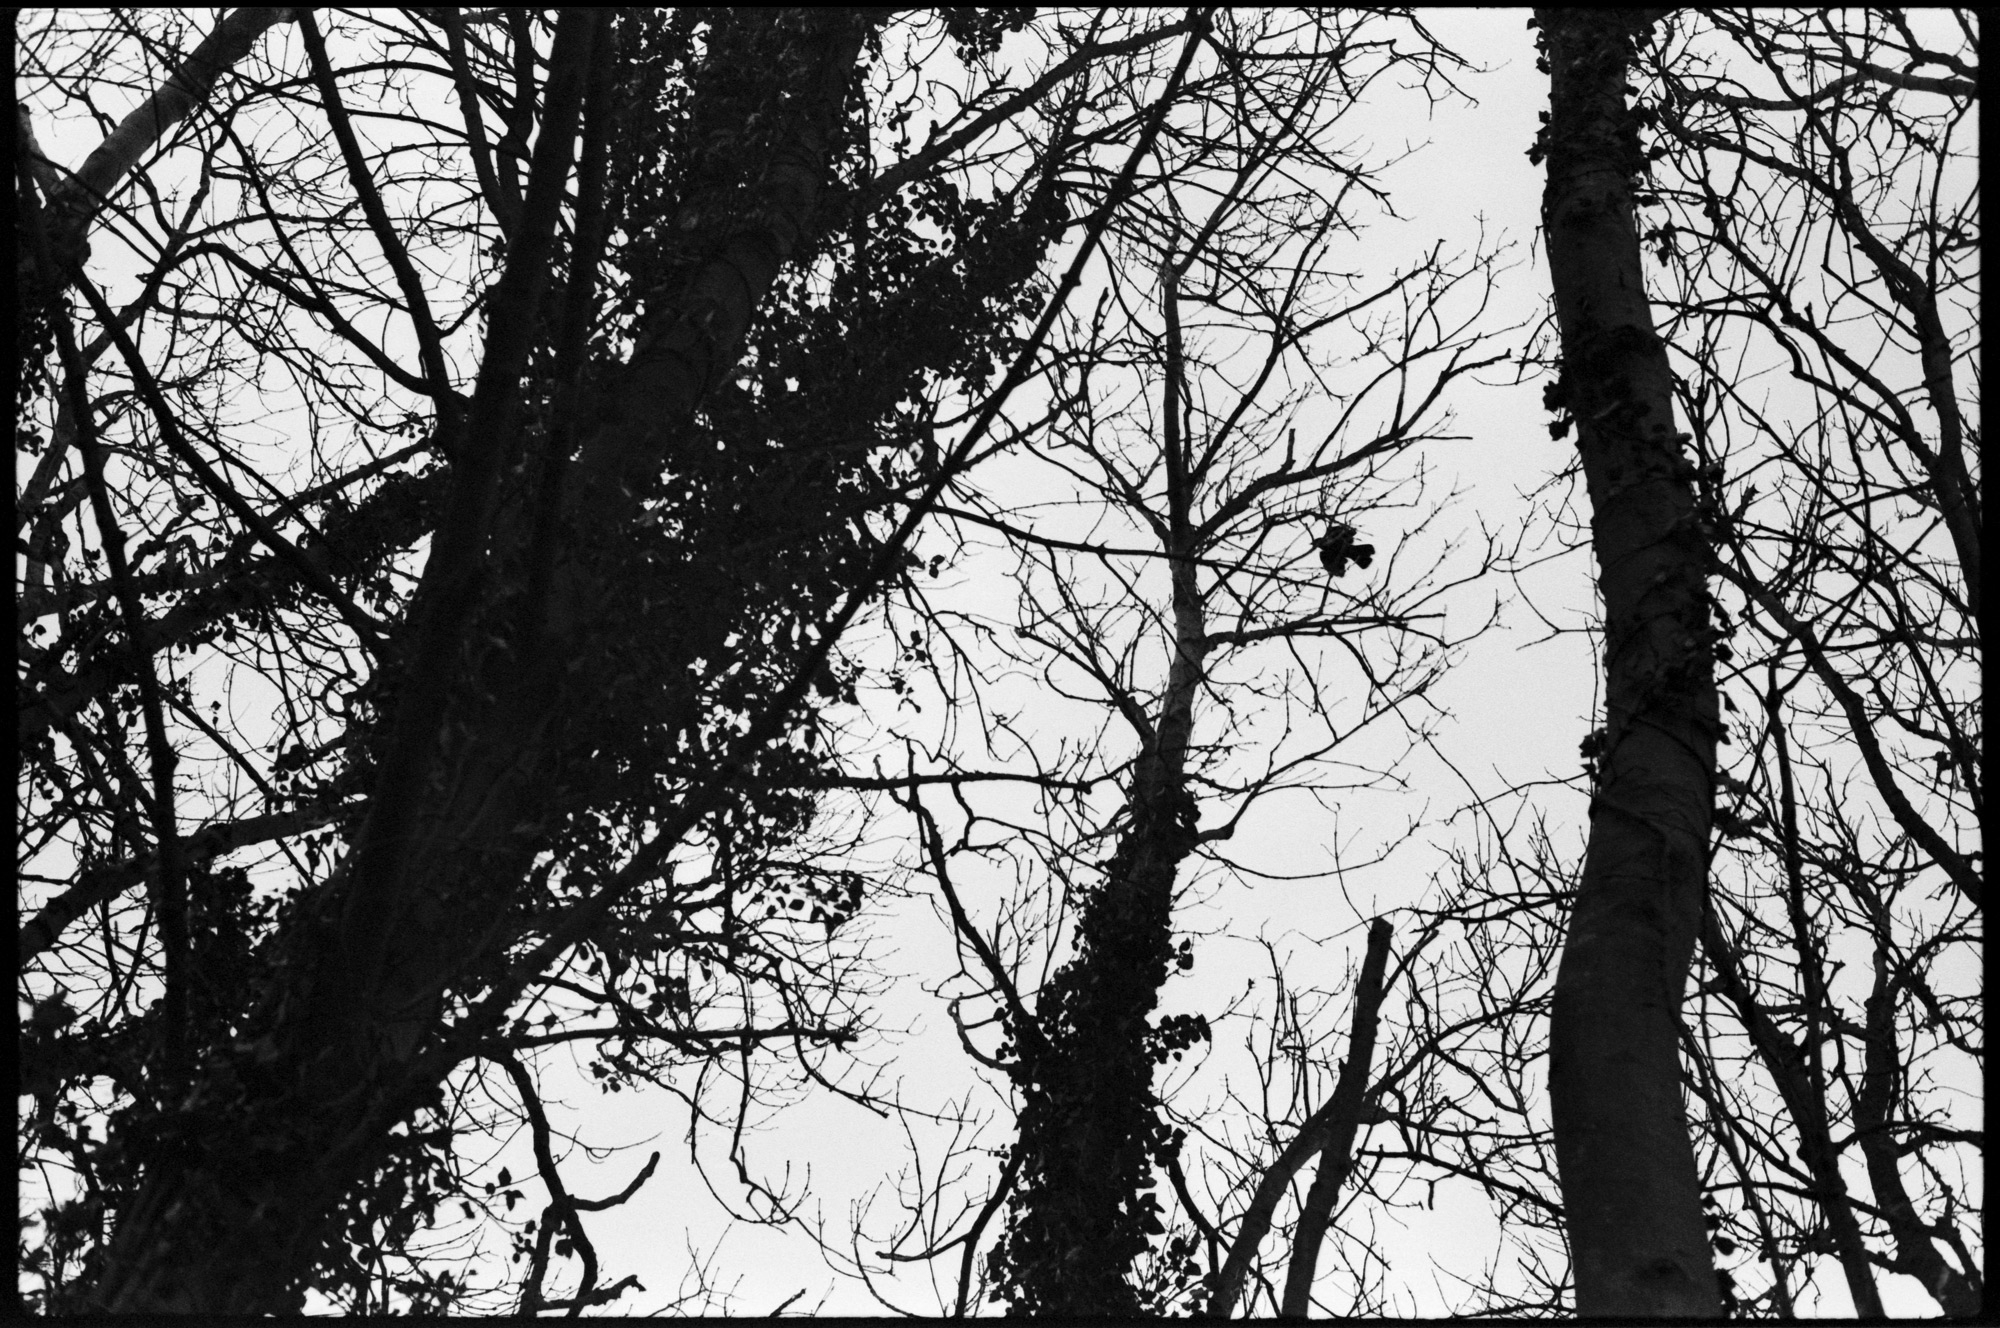 Through Trees, Observations Series, Photography By Ioannis Koussertari